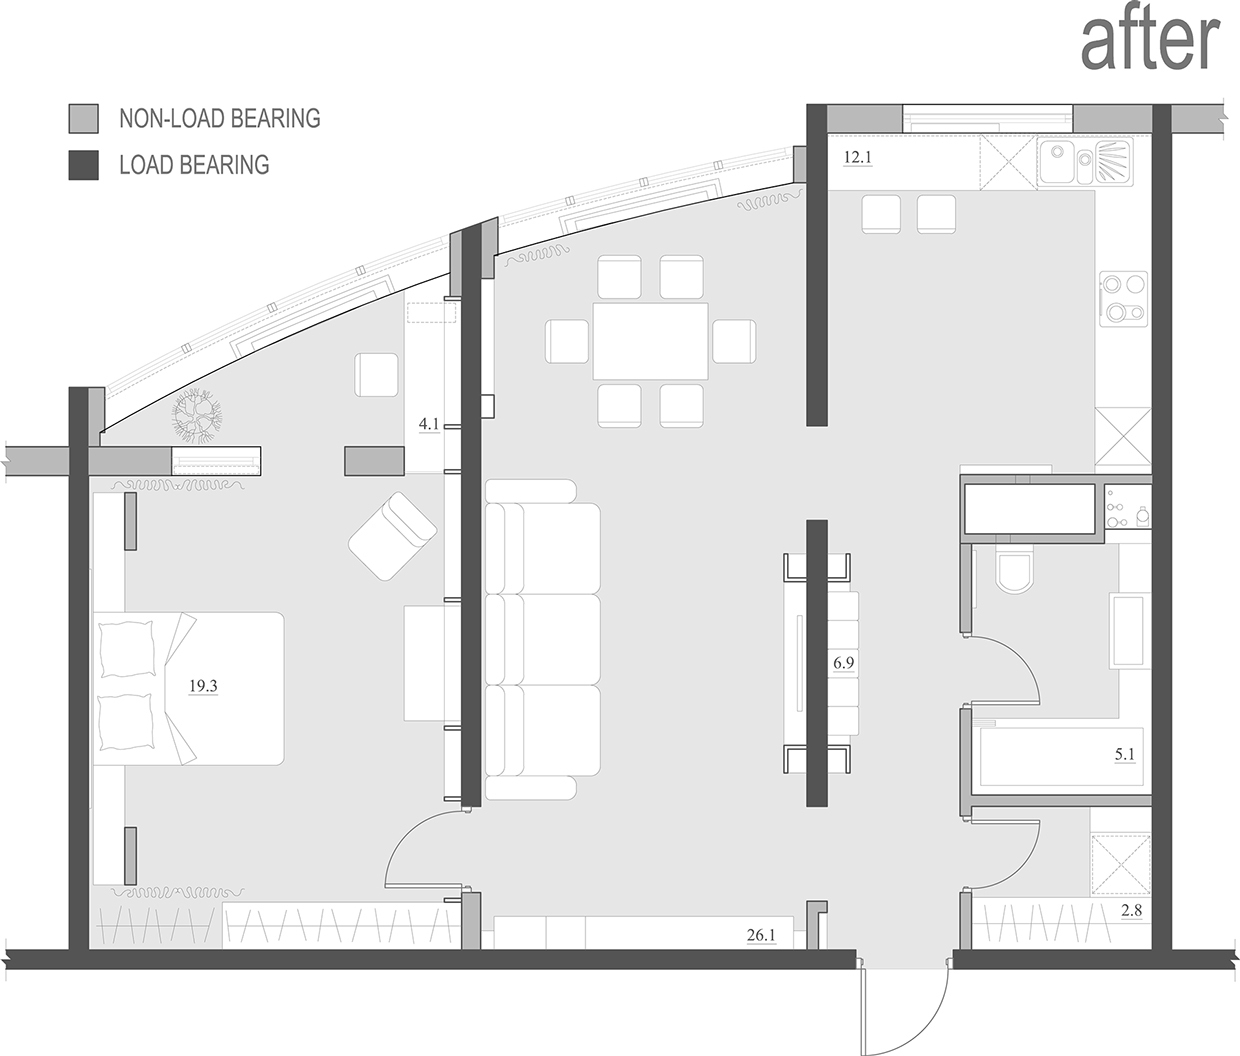 2 single bedroom apartment designs under 75 square meters for Design layout 2 bedroom flat